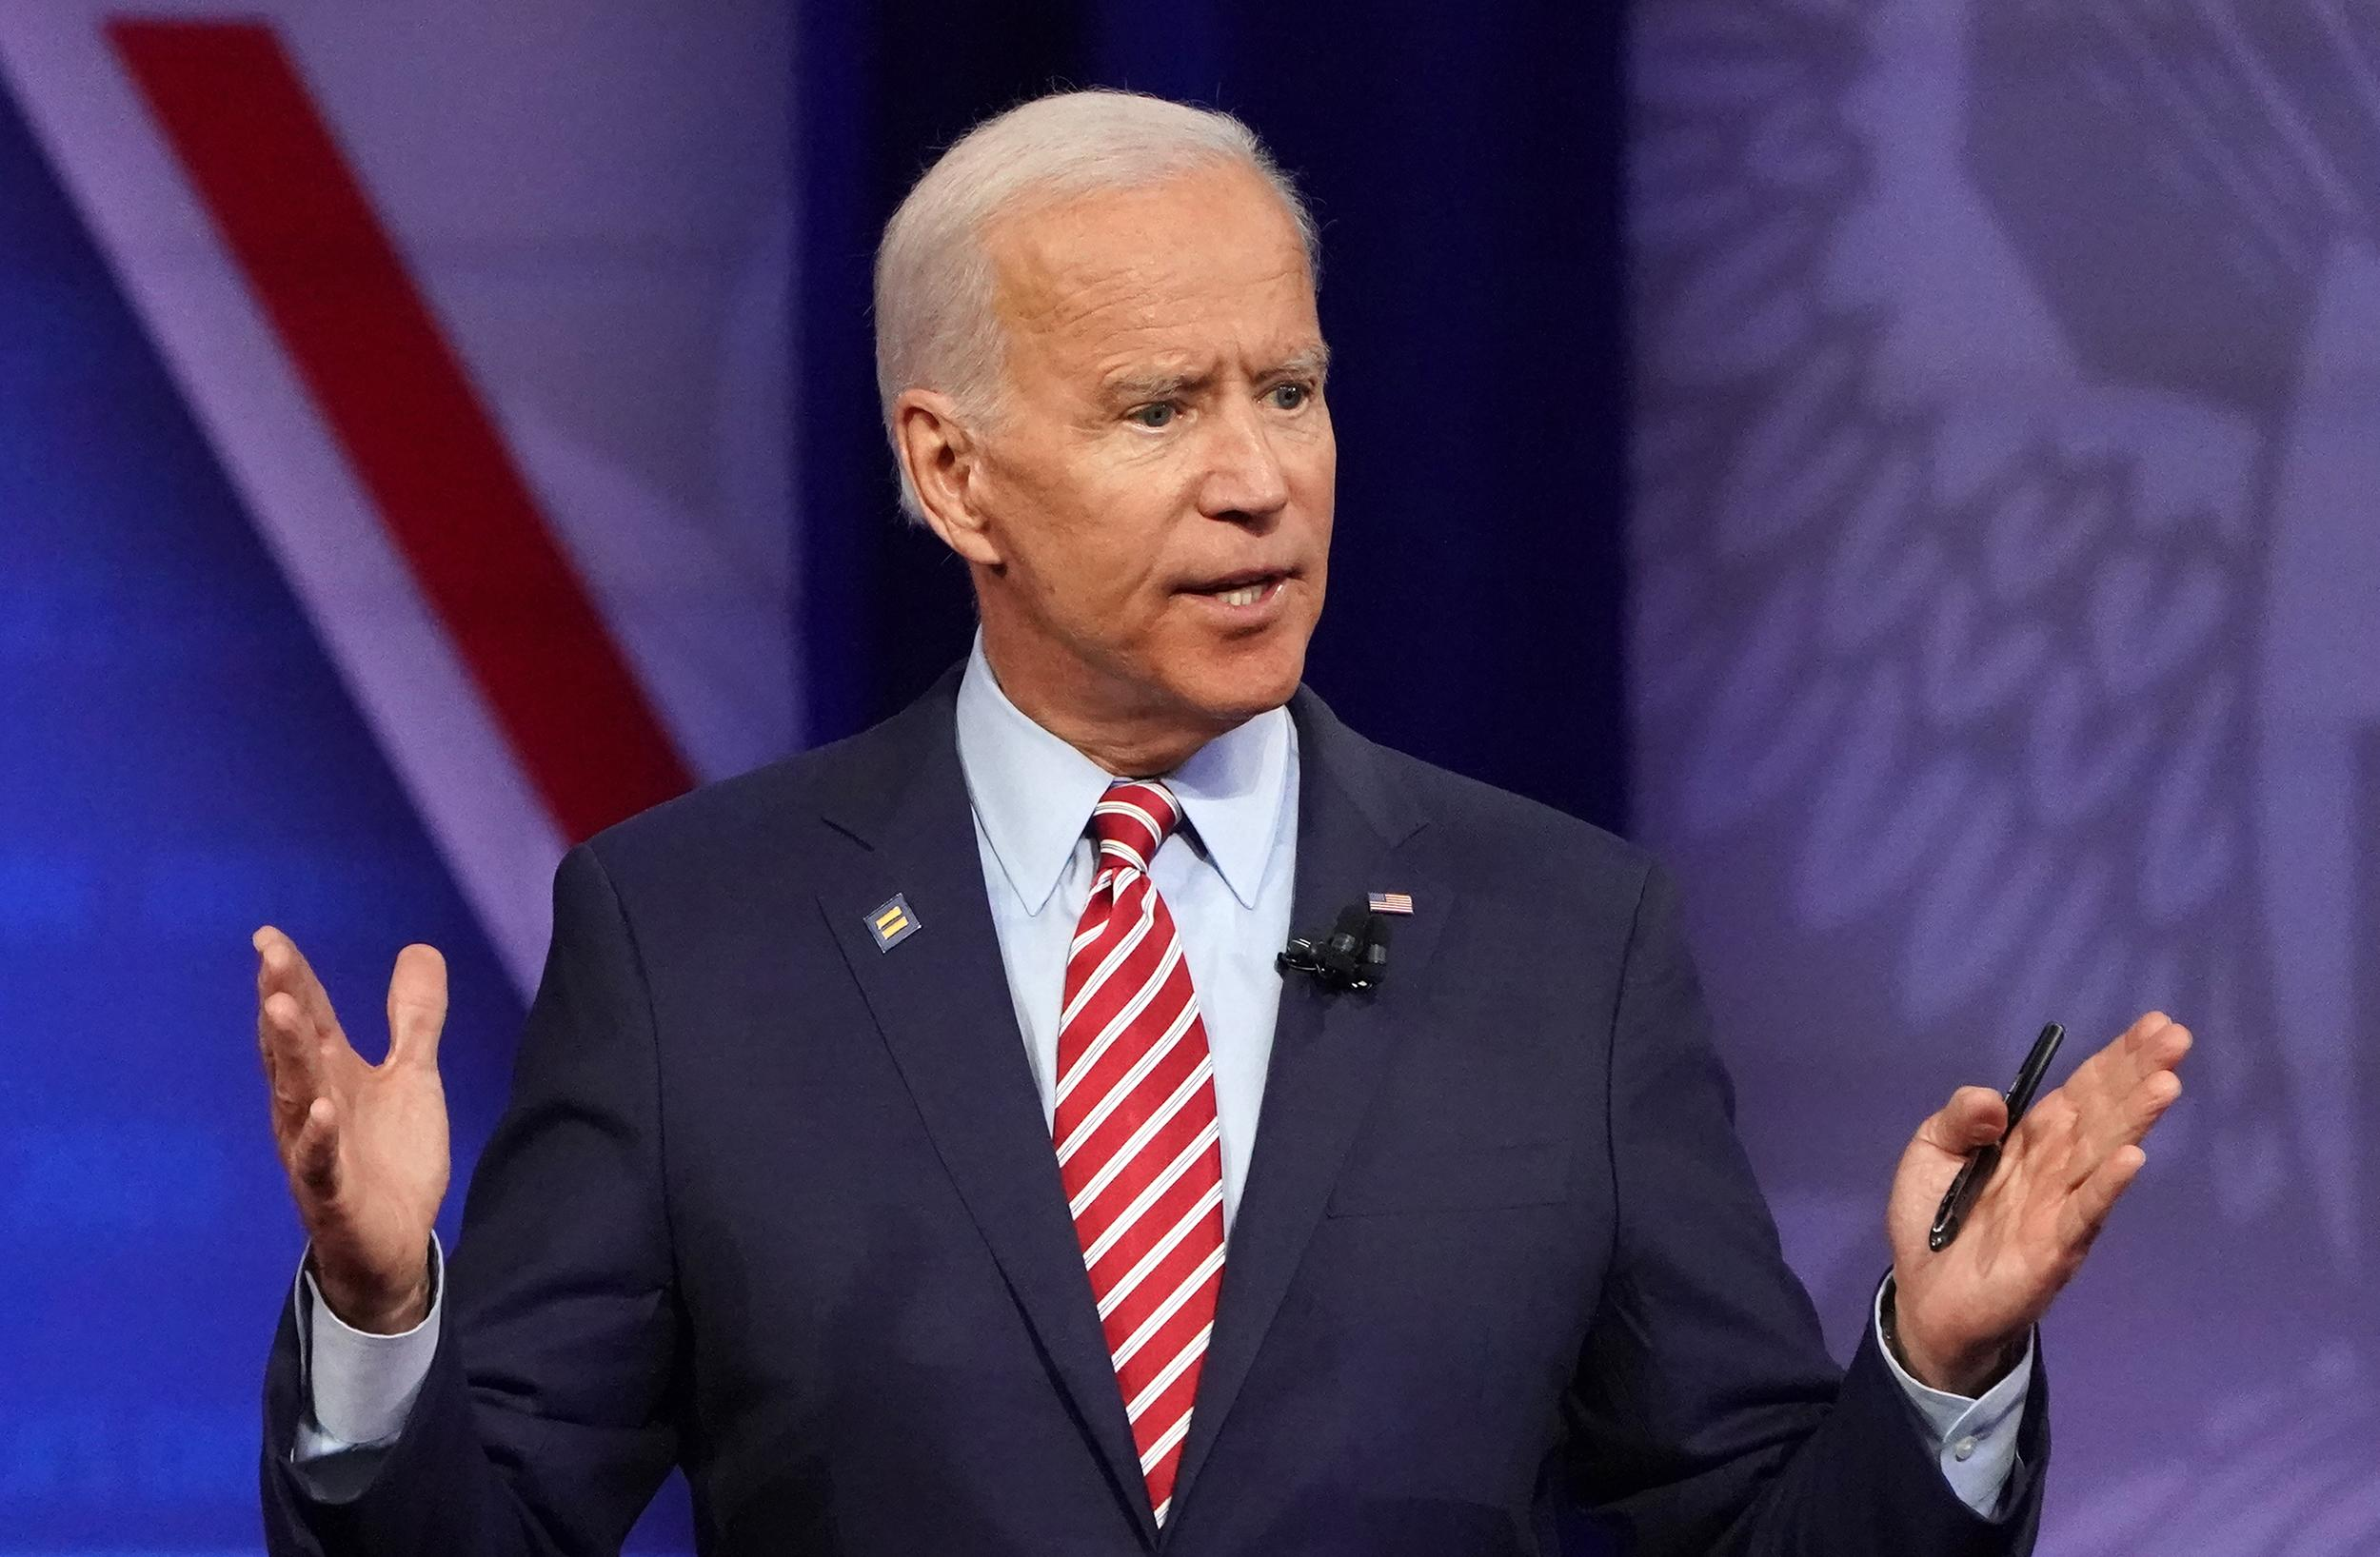 Biden to gay advocates: 'You deserve a partner in the White House'